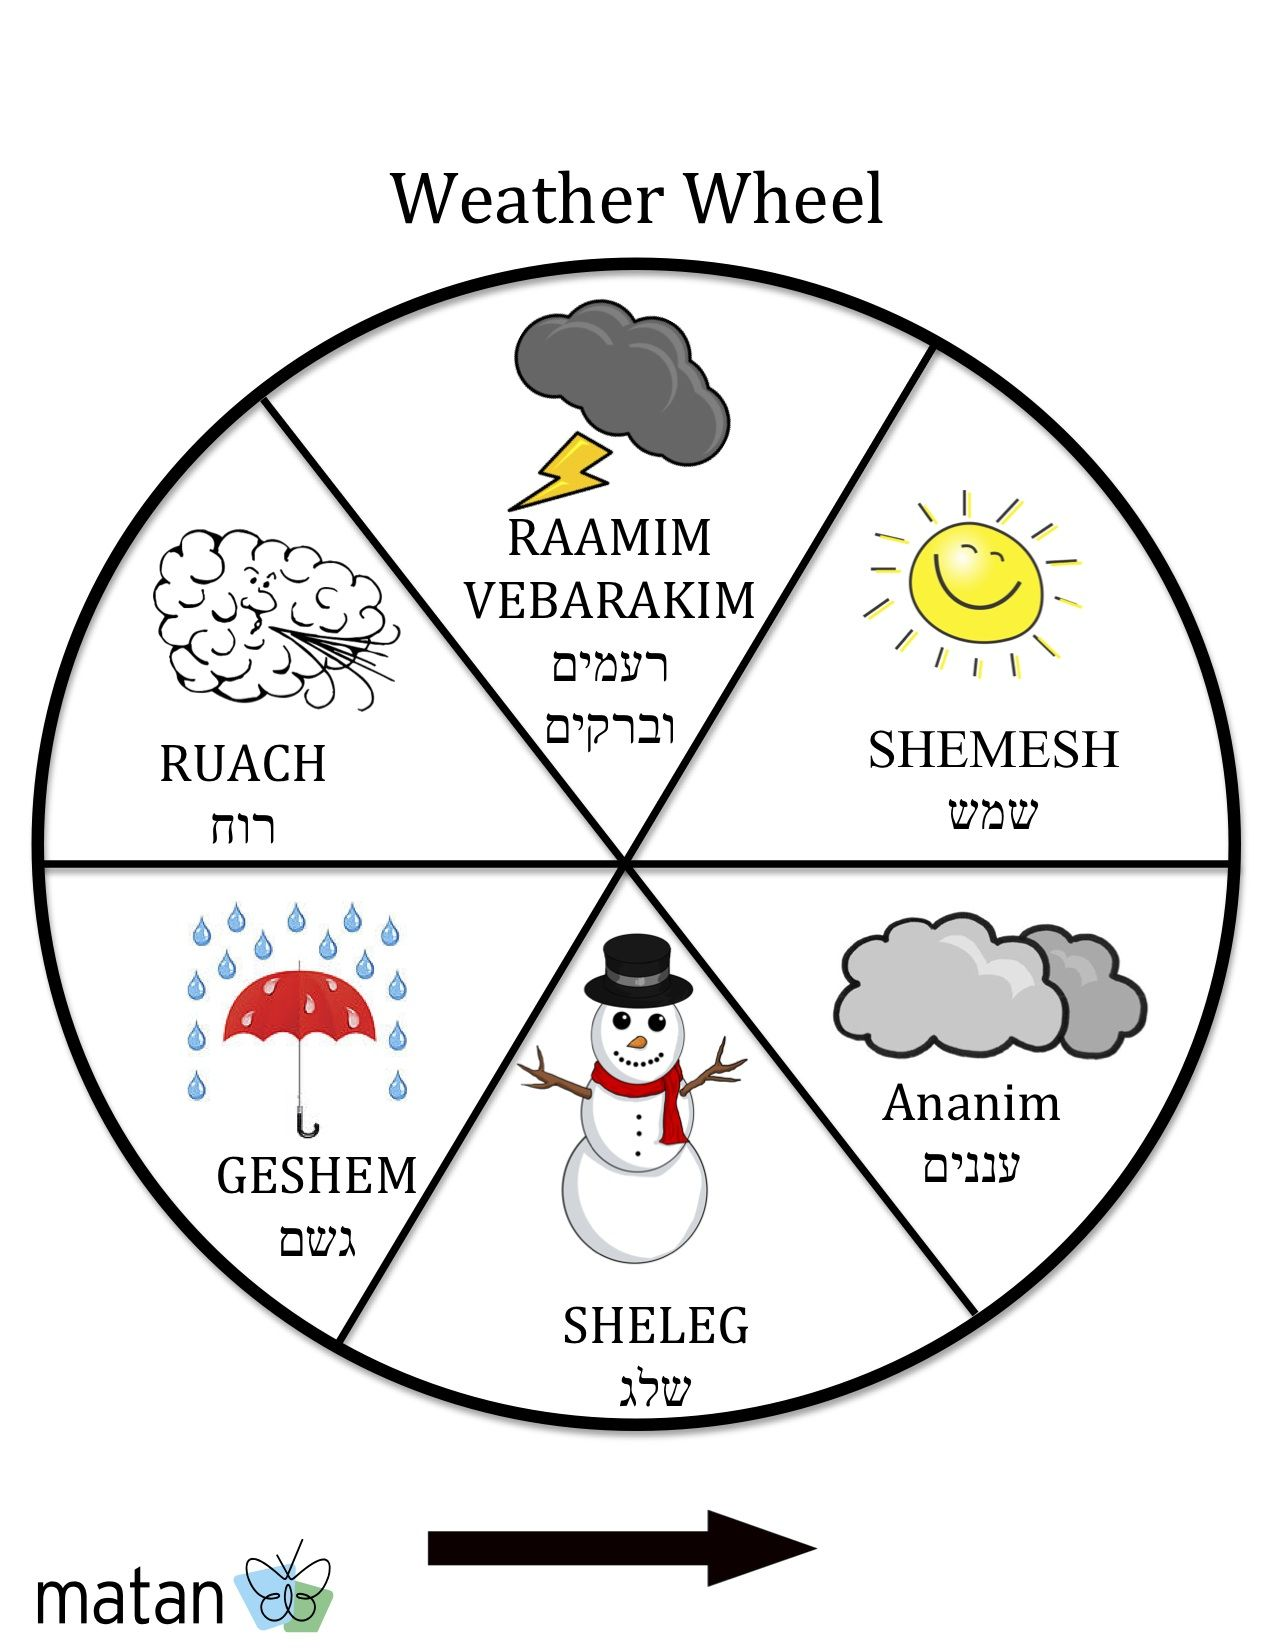 Use This To Describe The Weather In Hebrew We Can Use